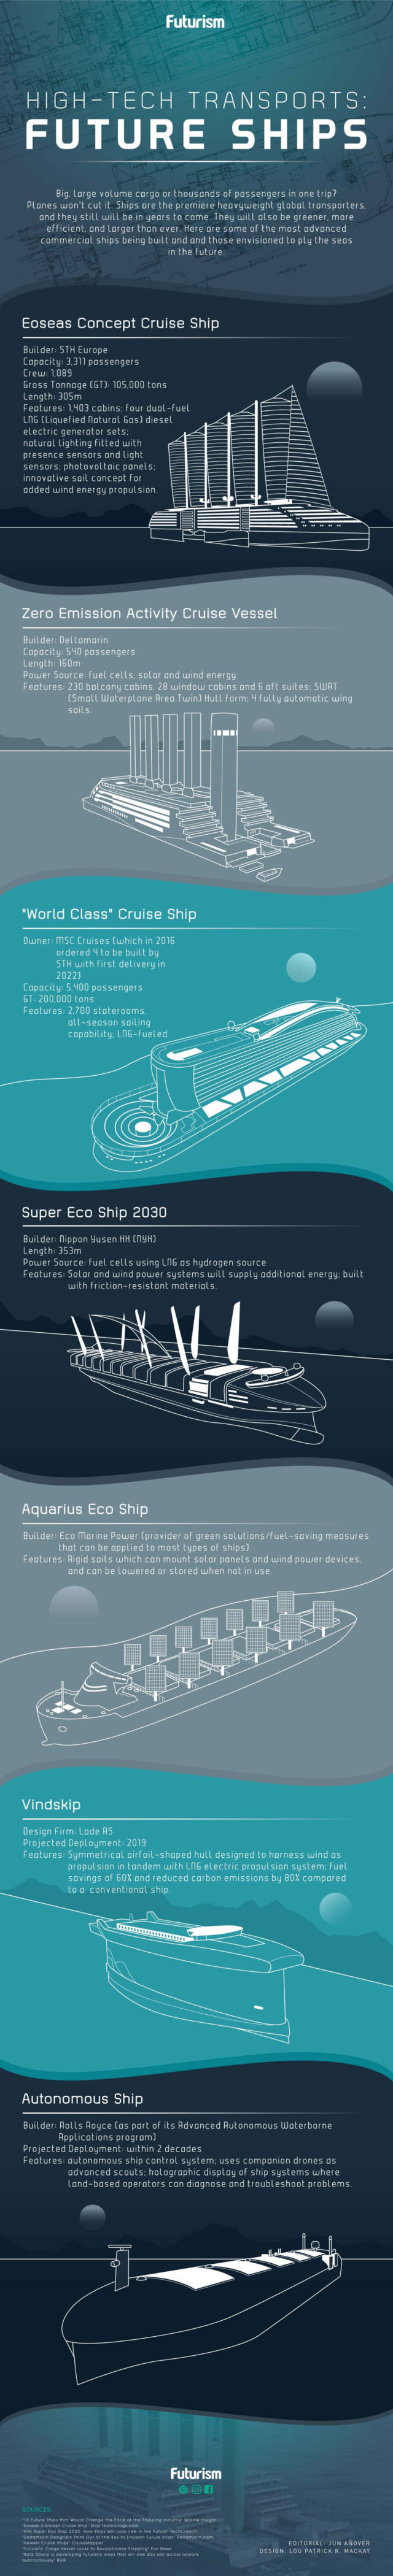 High Tech Transports Ships of tomorrow - infographic